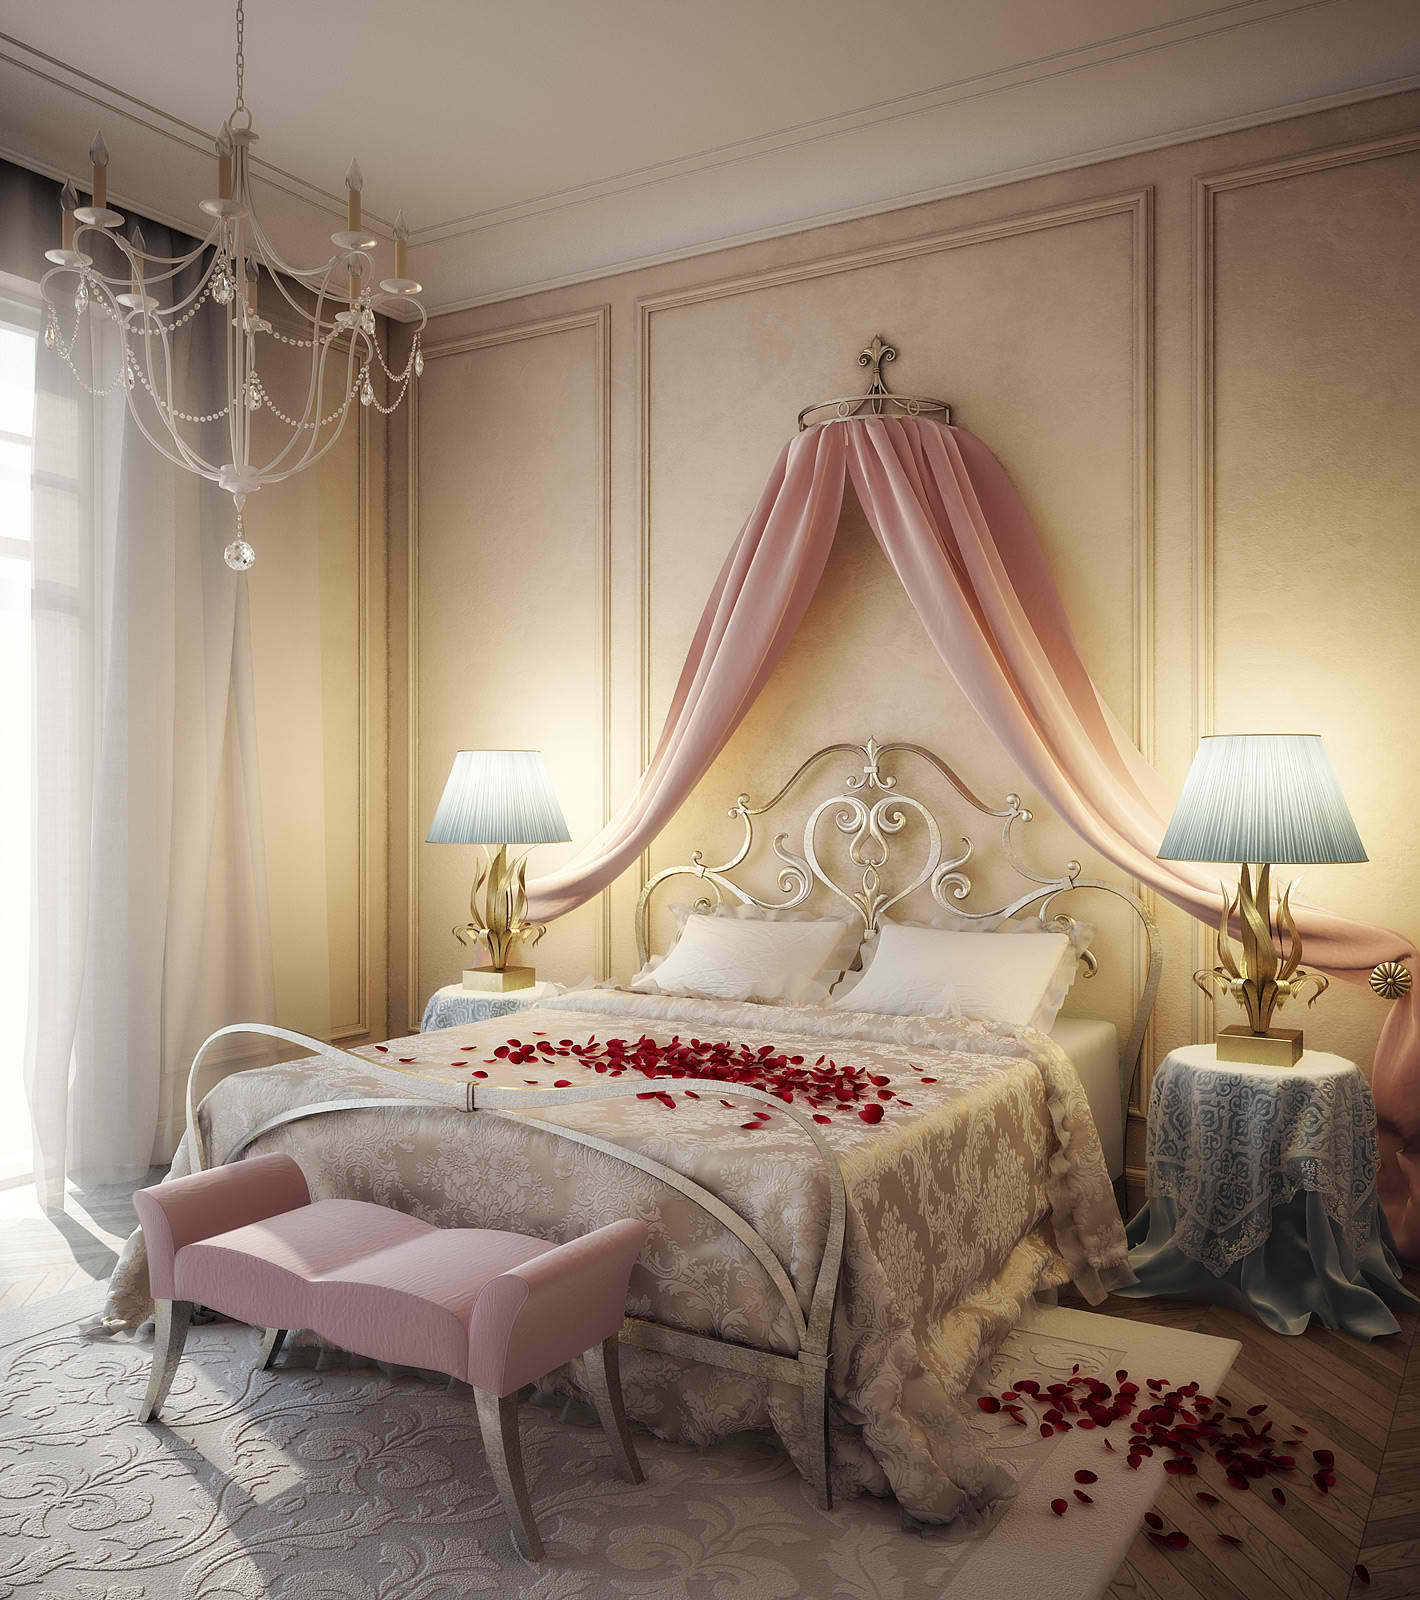 20 romantic bedroom ideas decoholic for Bedroom decorating tips